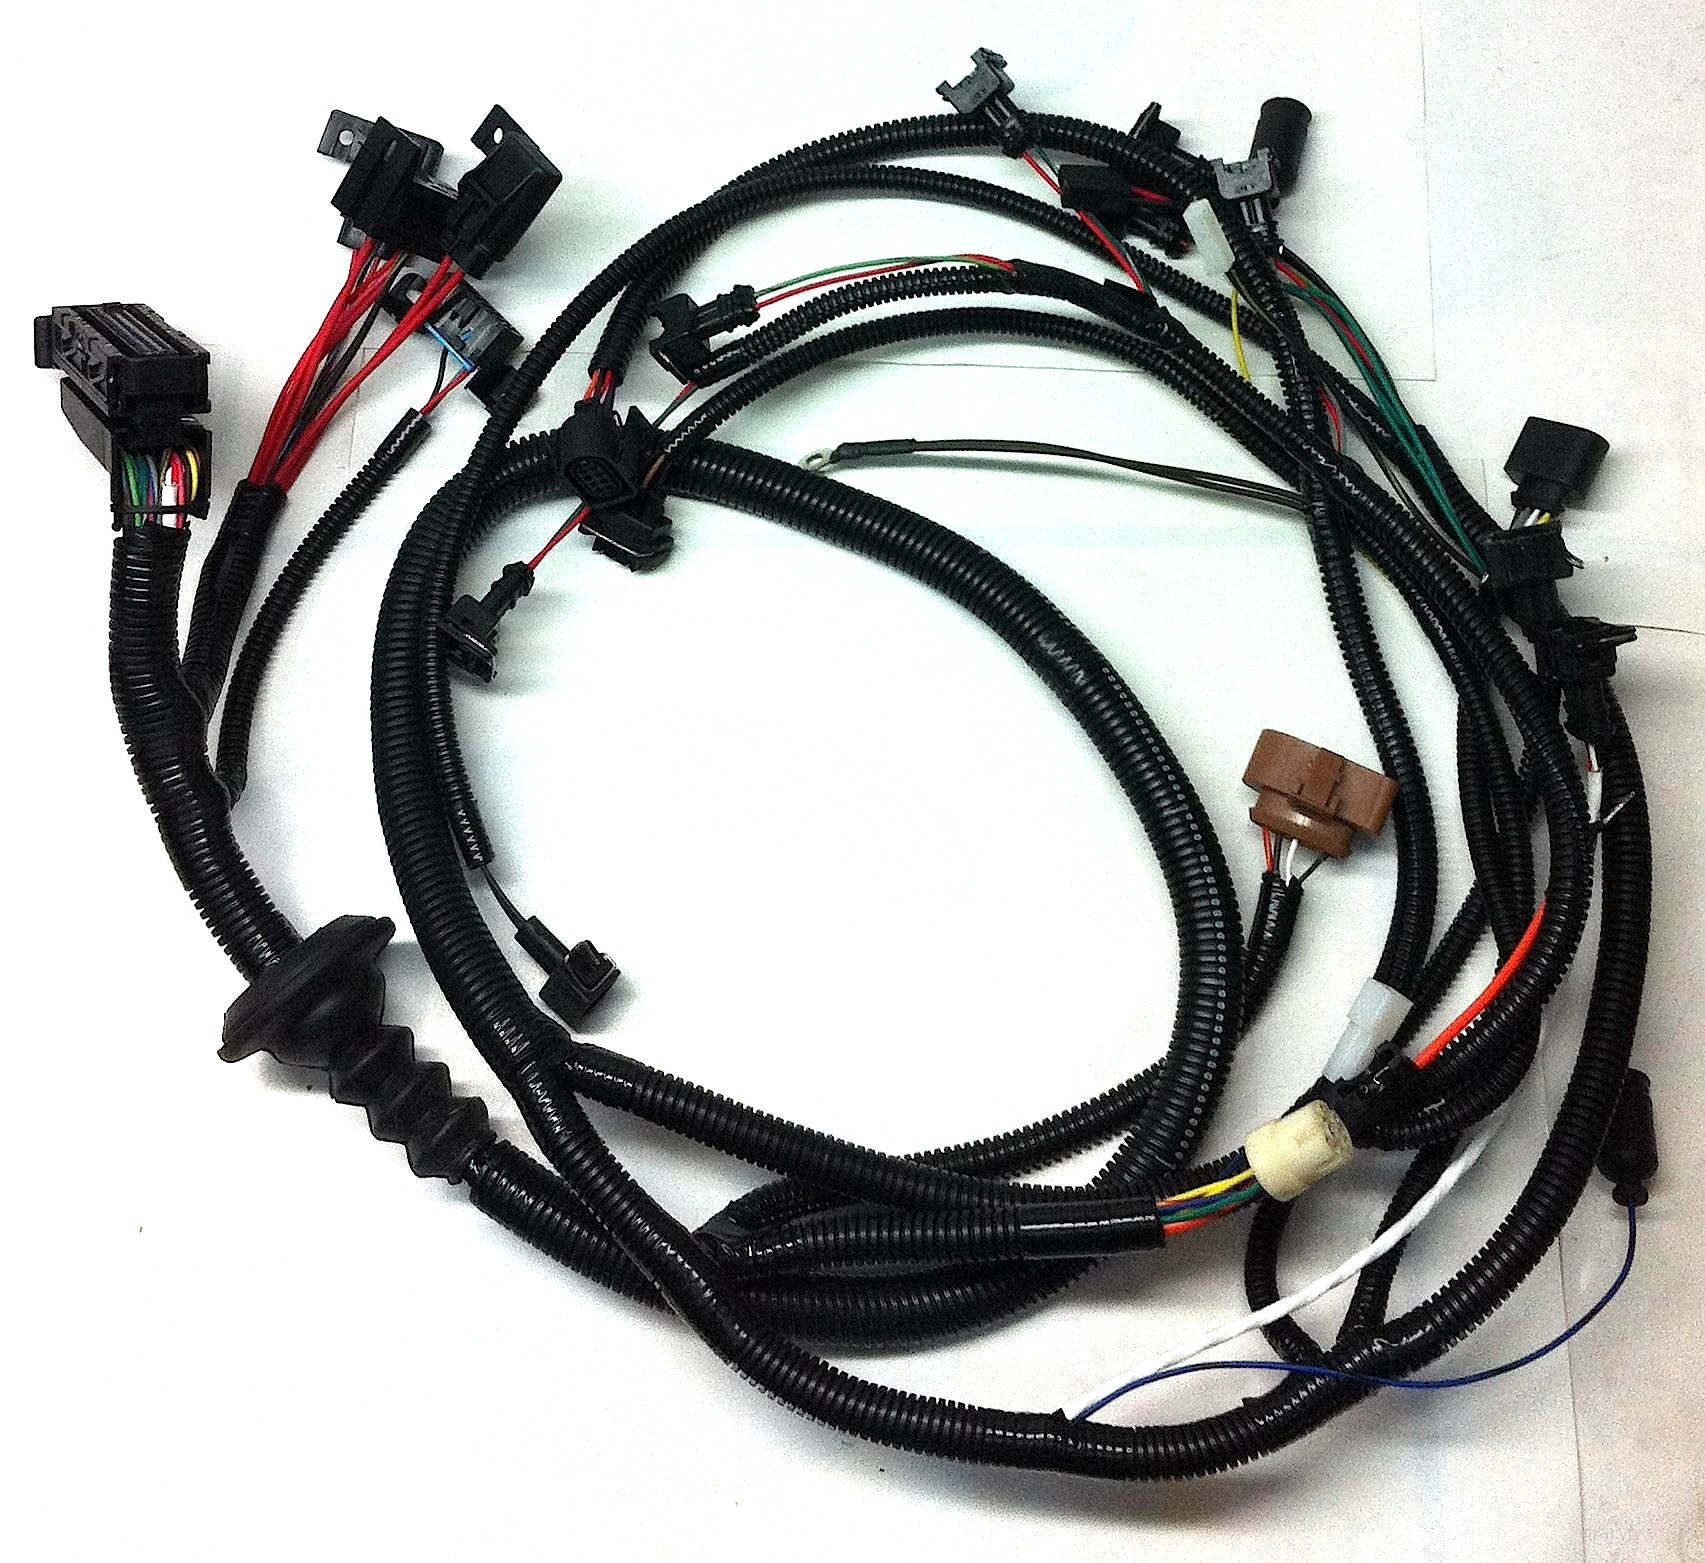 Wiring_Harness_2LR 2lr tiico conversion wiring harness foreign auto & supply, inc engine wiring harness at gsmx.co